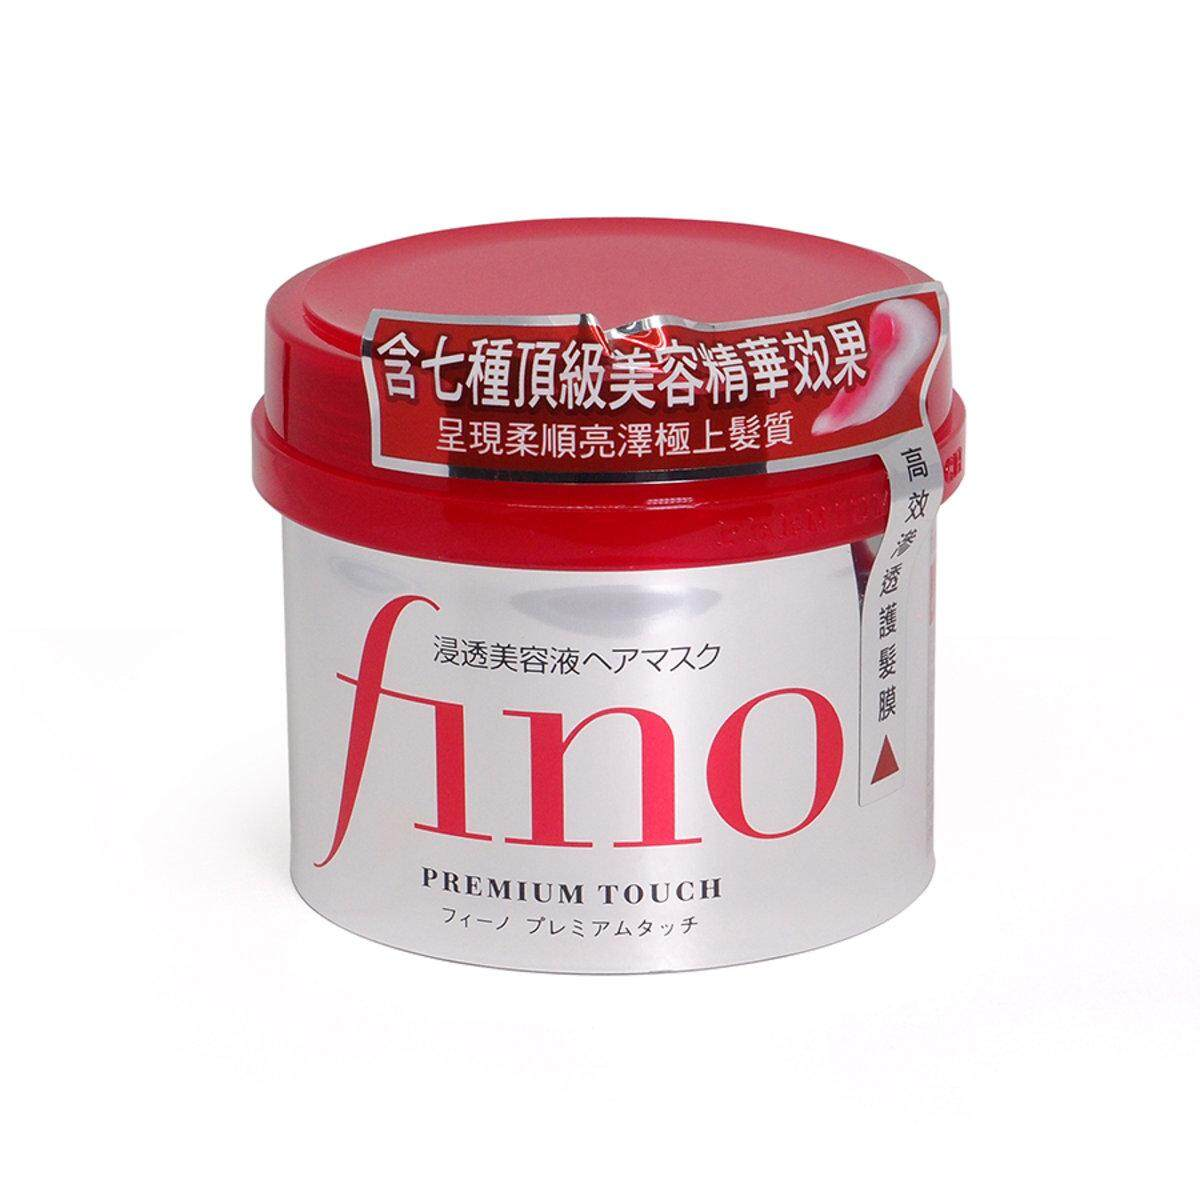 SHISEIDO Fino Premium Touch Hair Cream 230g